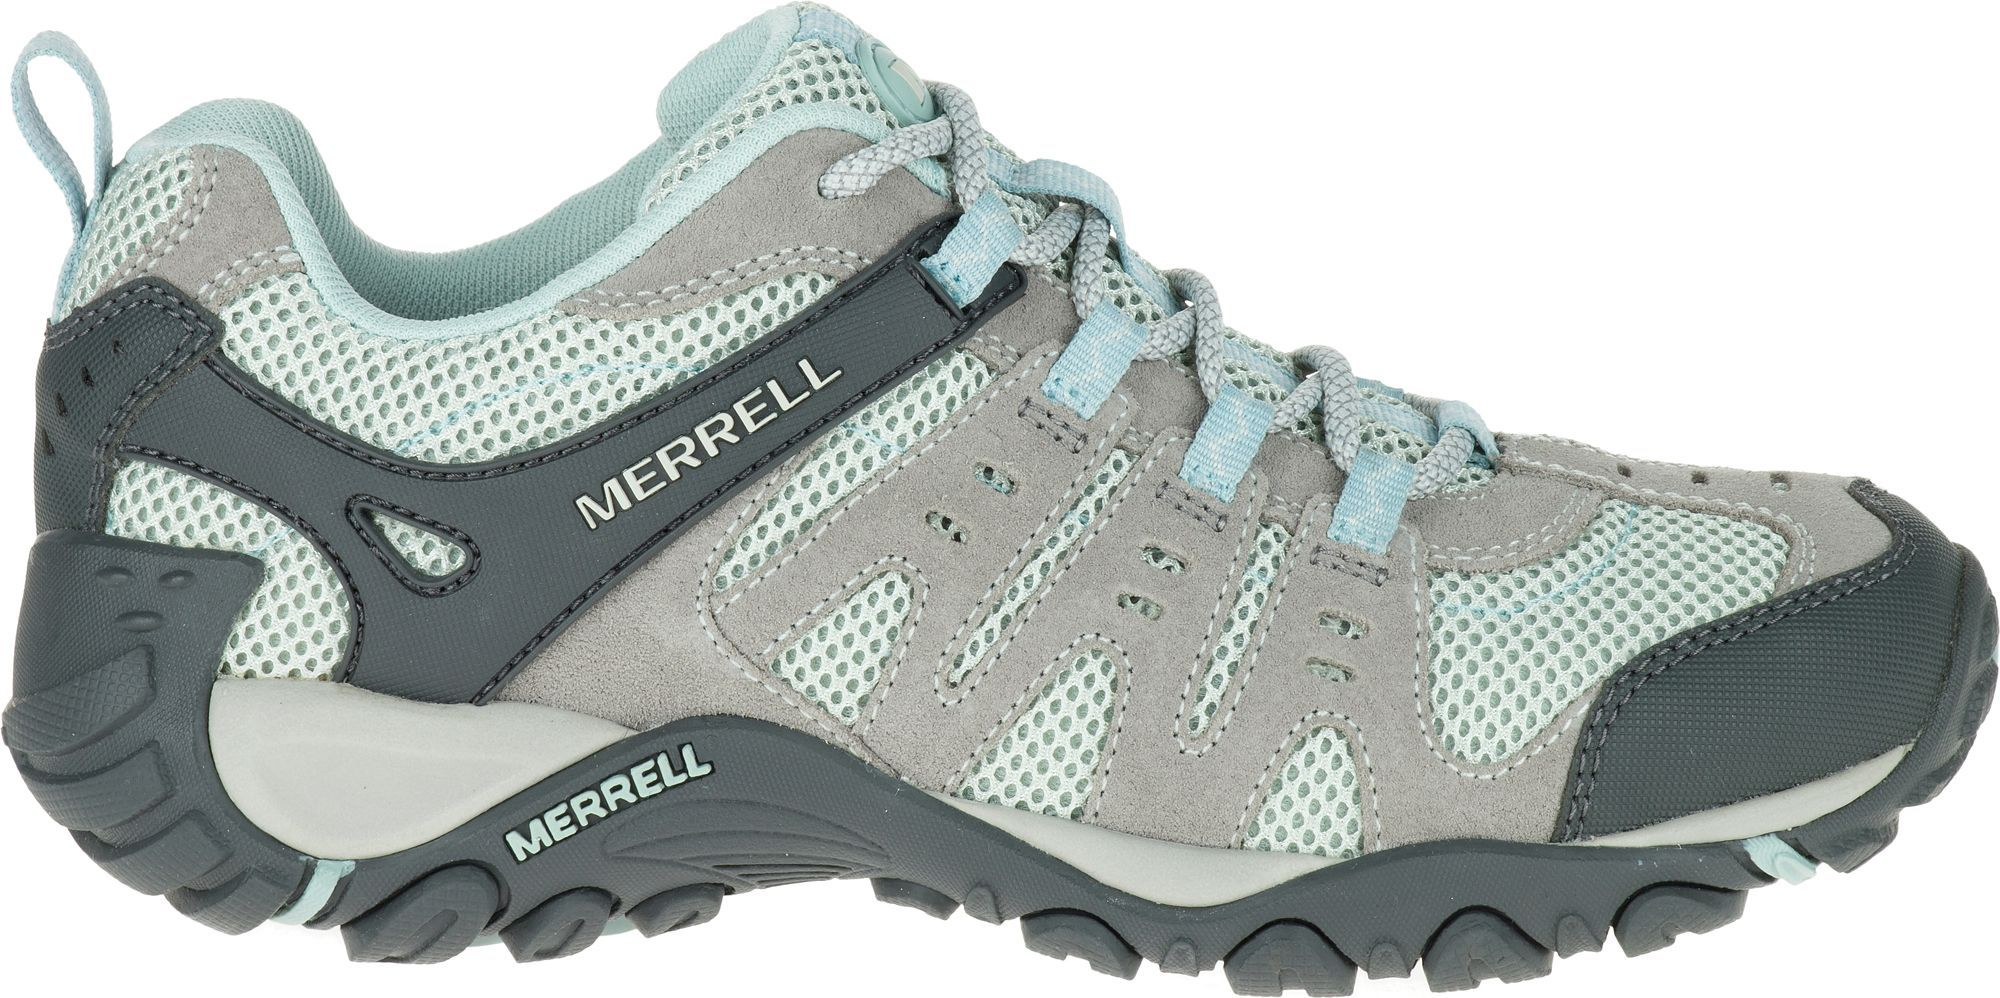 7825af8ae3 Merrell Women's Accentor Low Hiking Shoes | Products | Hiking shoes ...